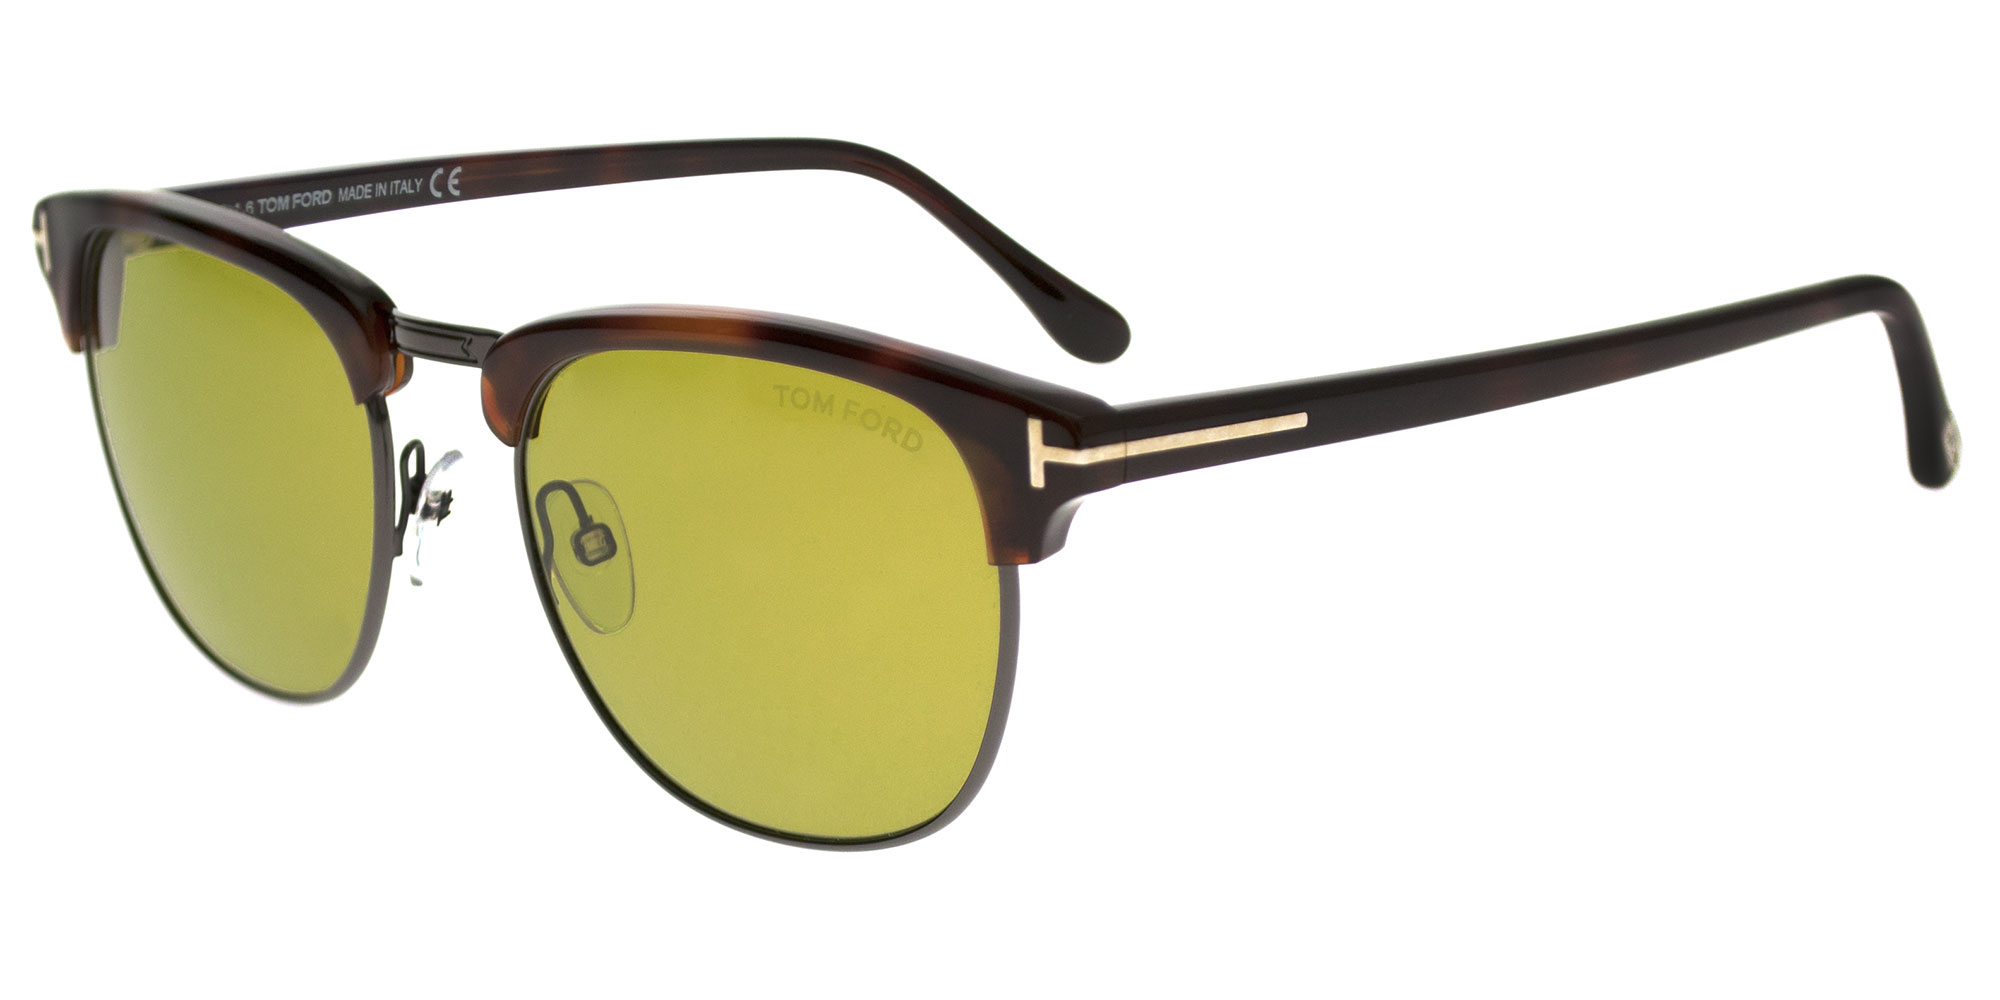 10aacc14df Details about Tom Ford HENRY FT 0248 DARK HAVANA GREEN men AUTHENTIC  Sunglasses